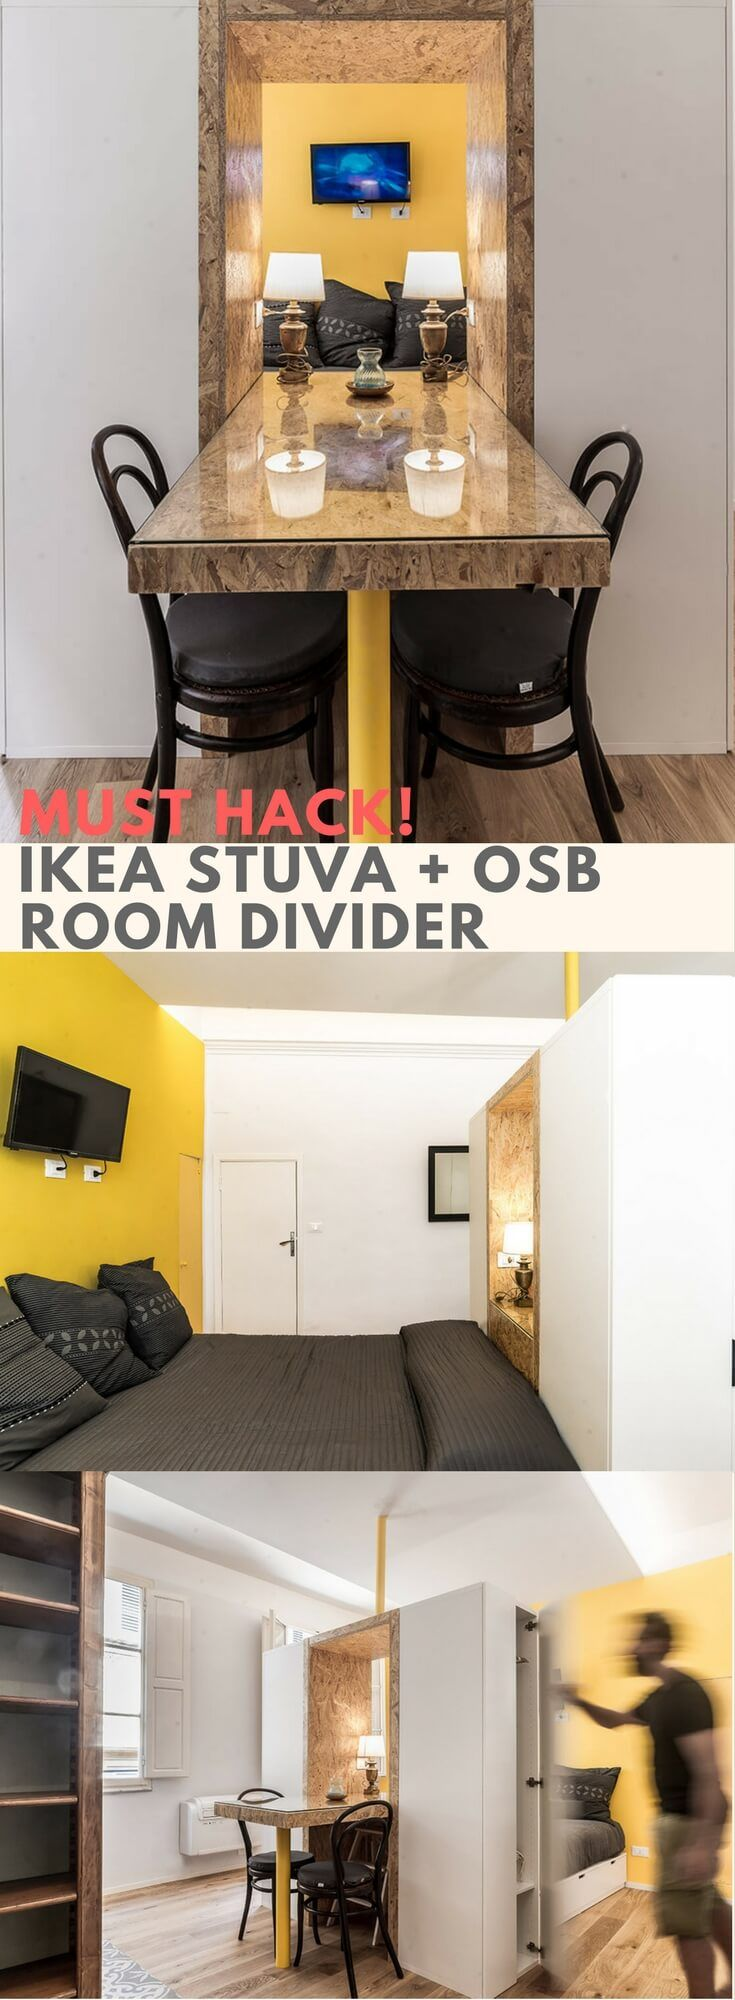 the 25 best ikea room divider ideas on pinterest cheap. Black Bedroom Furniture Sets. Home Design Ideas